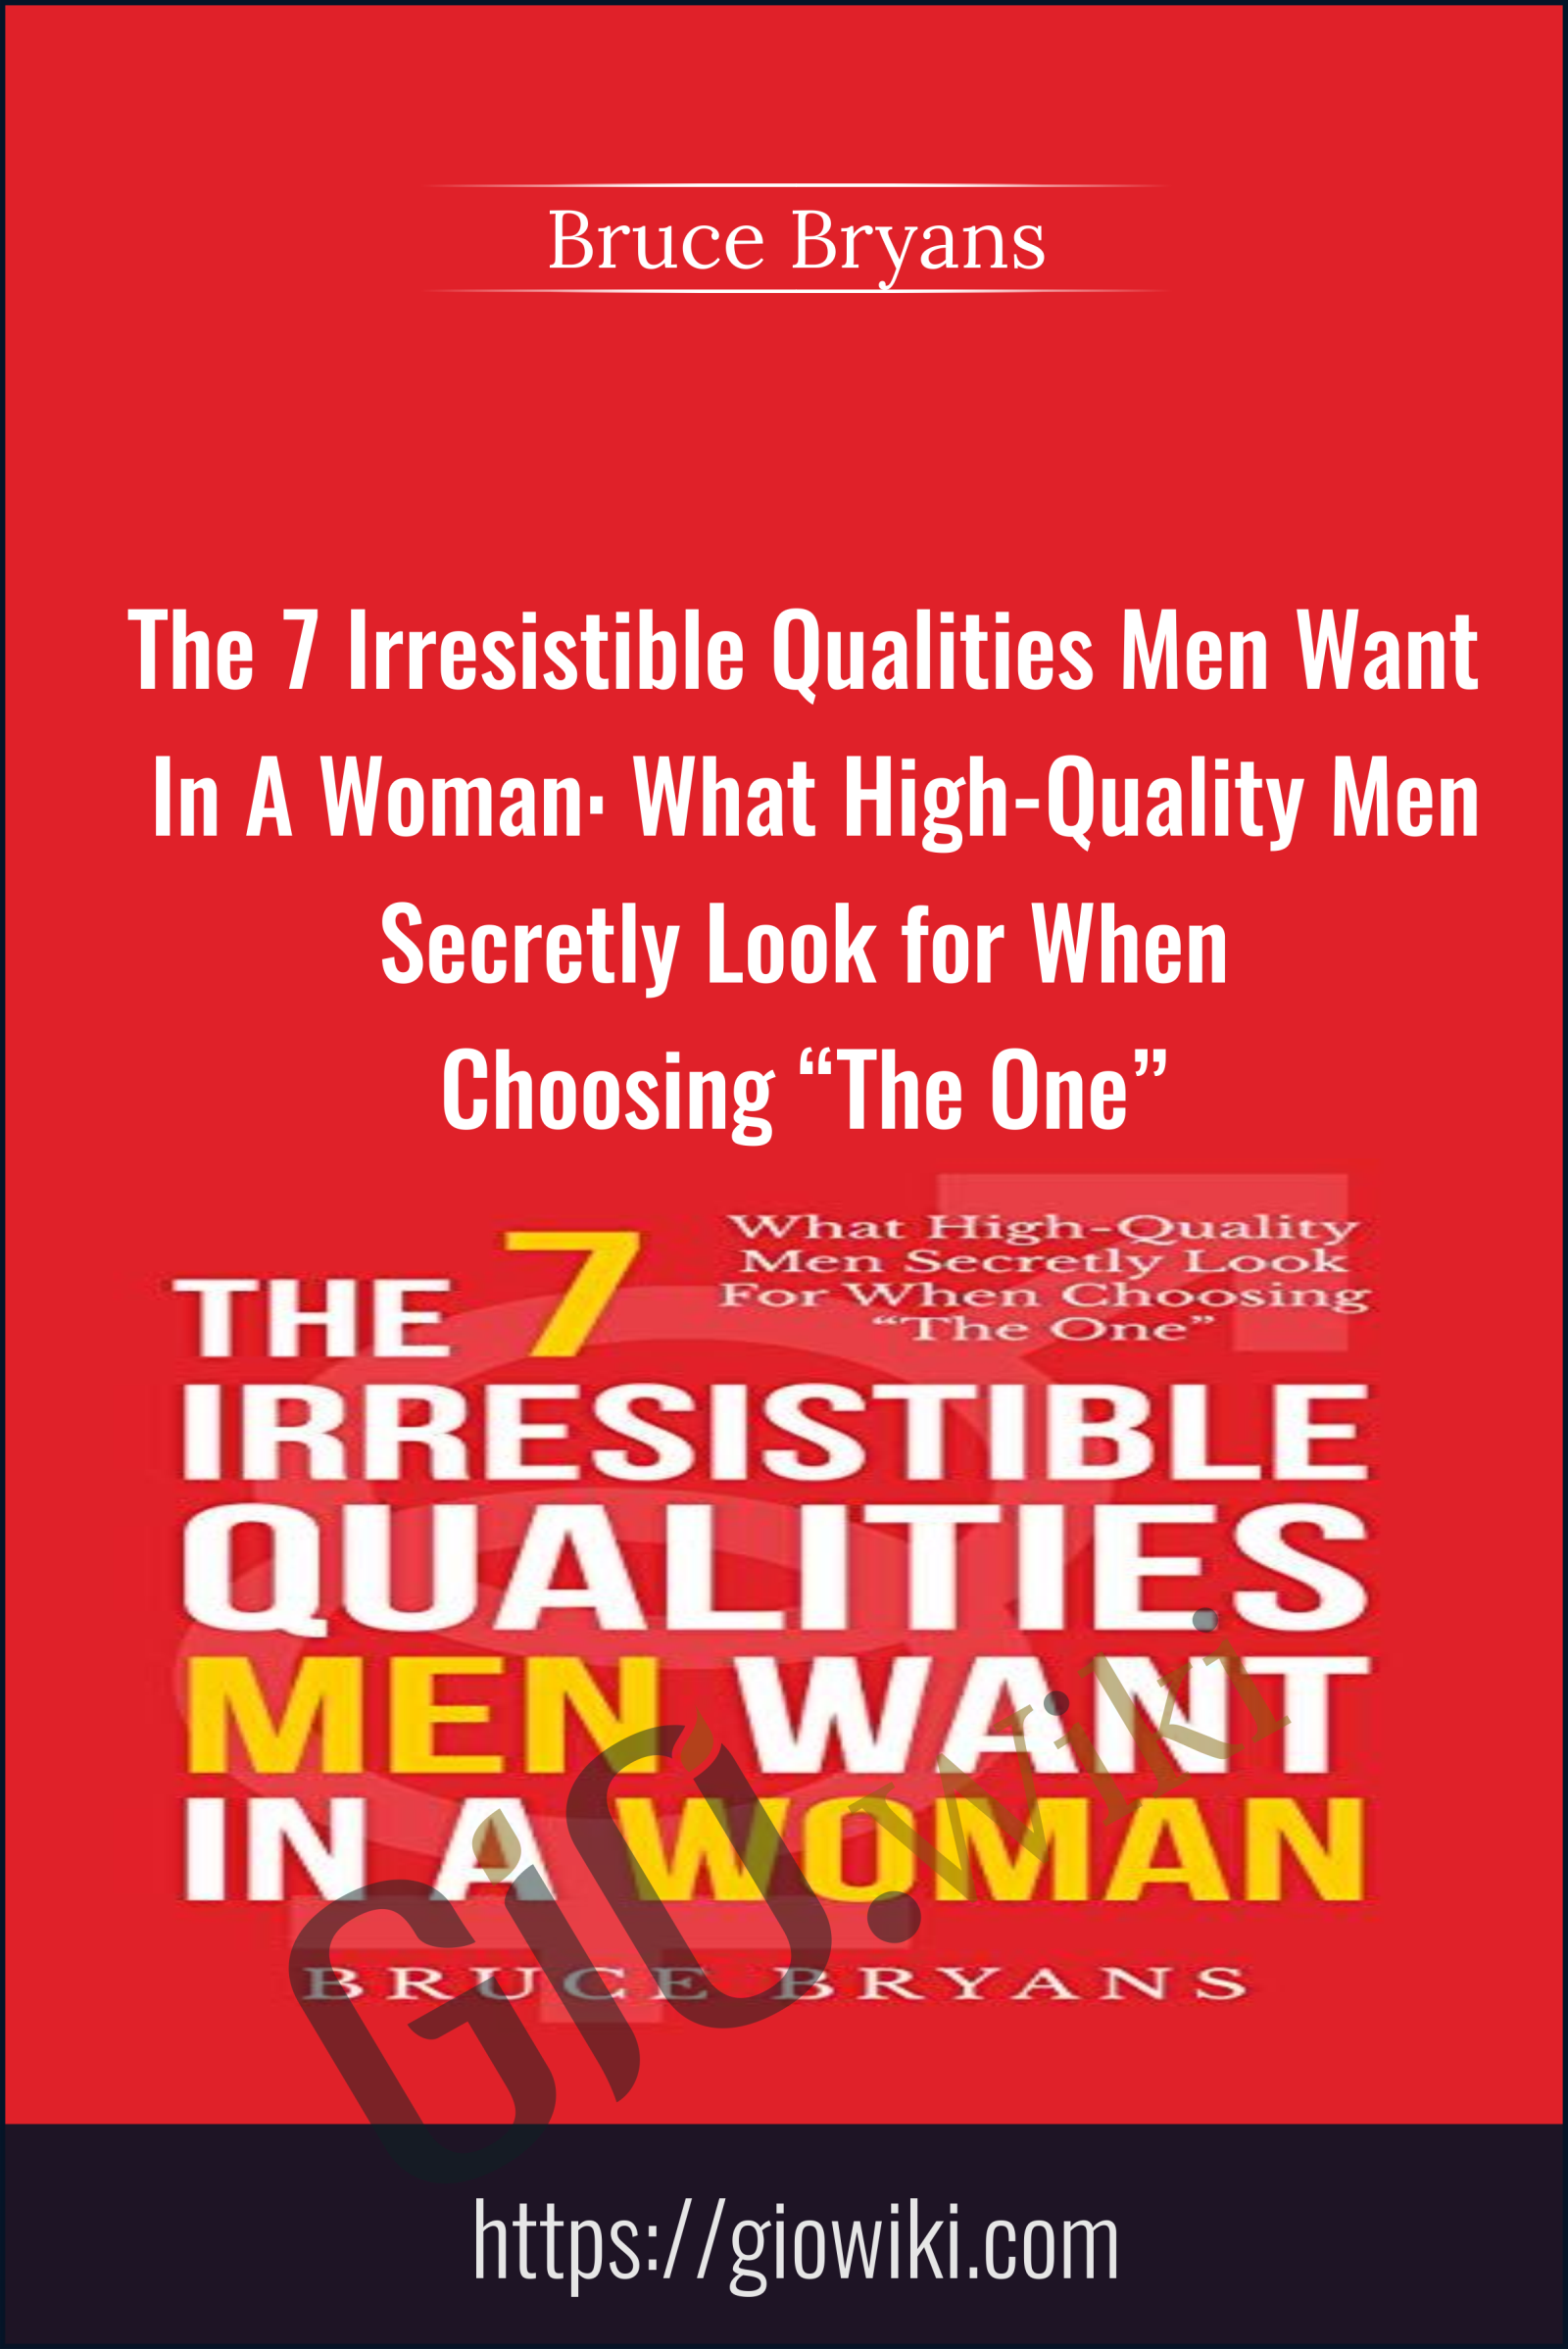 "The 7 Irresistible Qualities Men Want In A Woman: What High-Quality Men Secretly Look for When Choosing ""The One"" - Bruce Bryans"